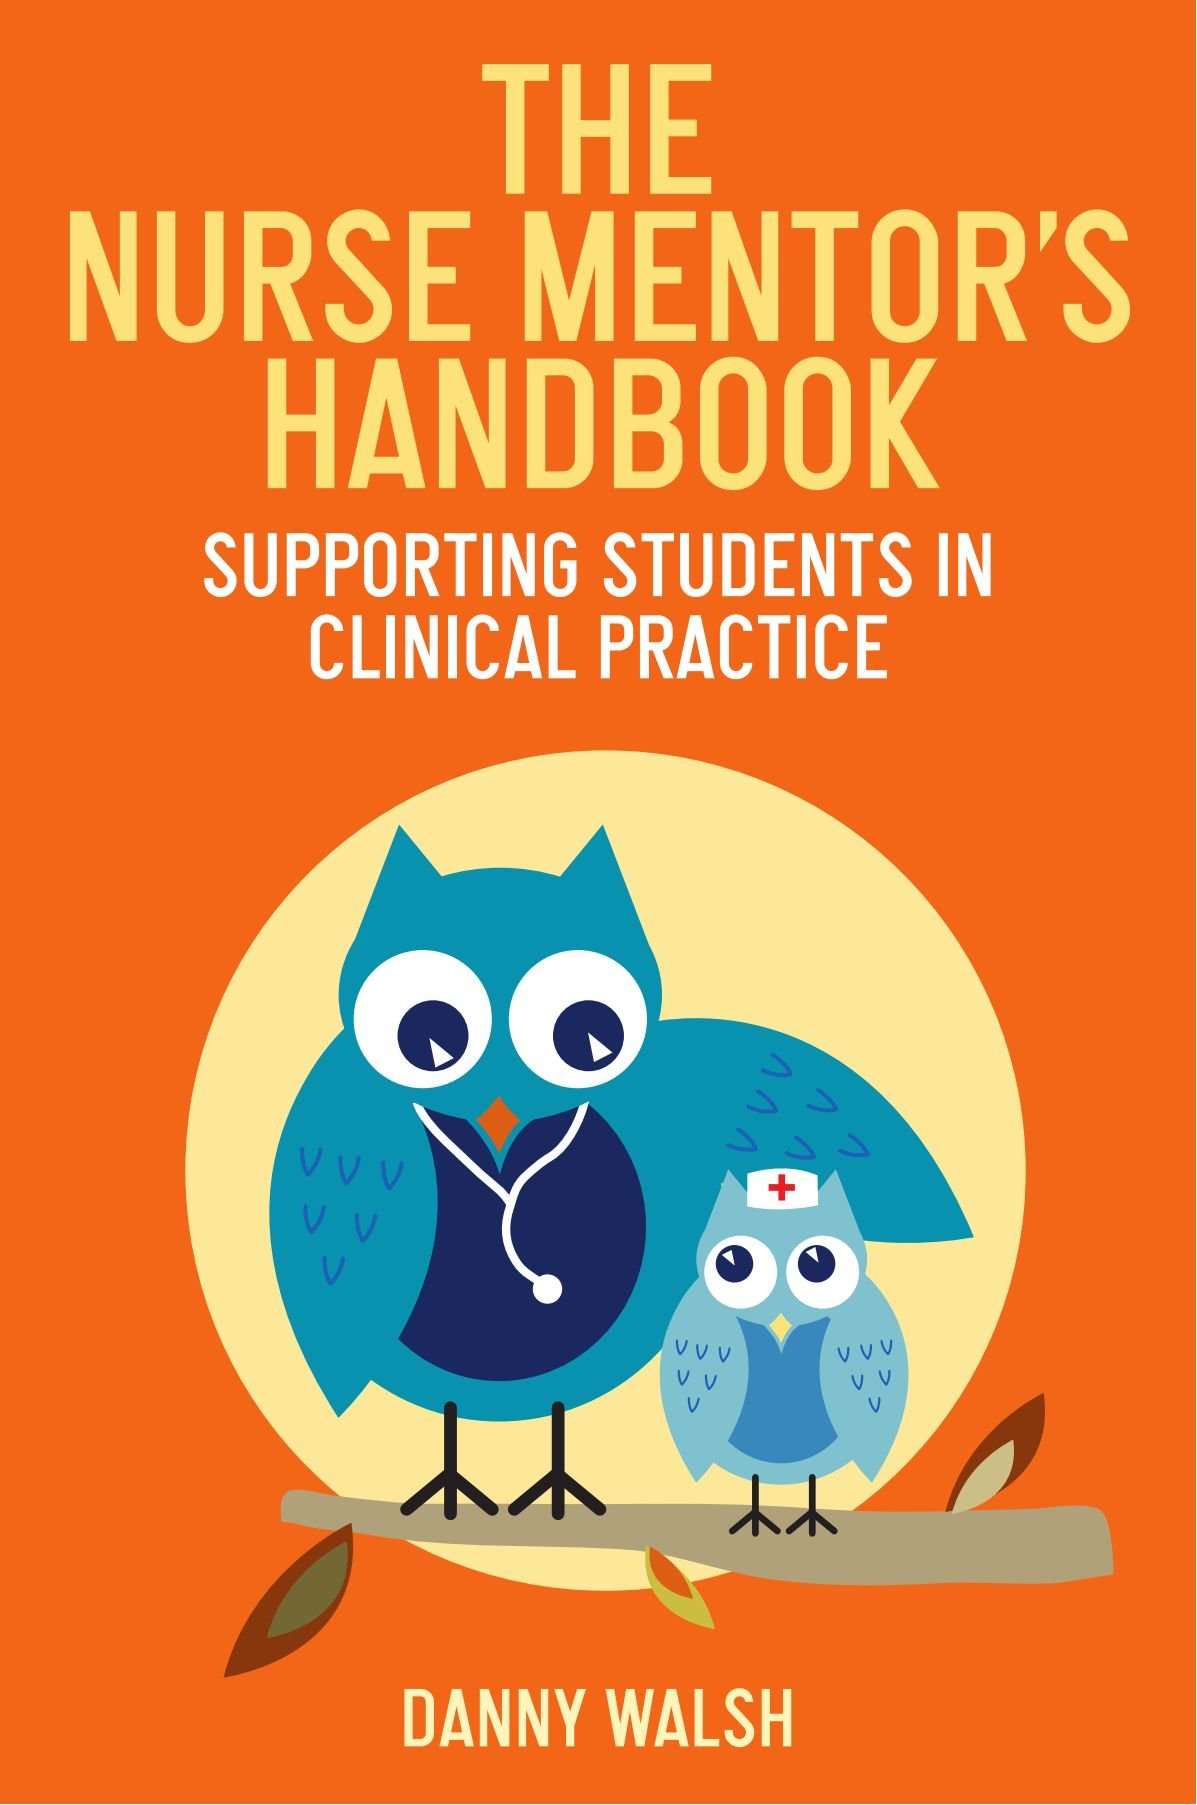 the nurse mentor s handbook supporting students in clinical the nurse mentor s handbook supporting students in clinical practice supporting students in clinical practice amazon co uk danny walsh 9780335237210